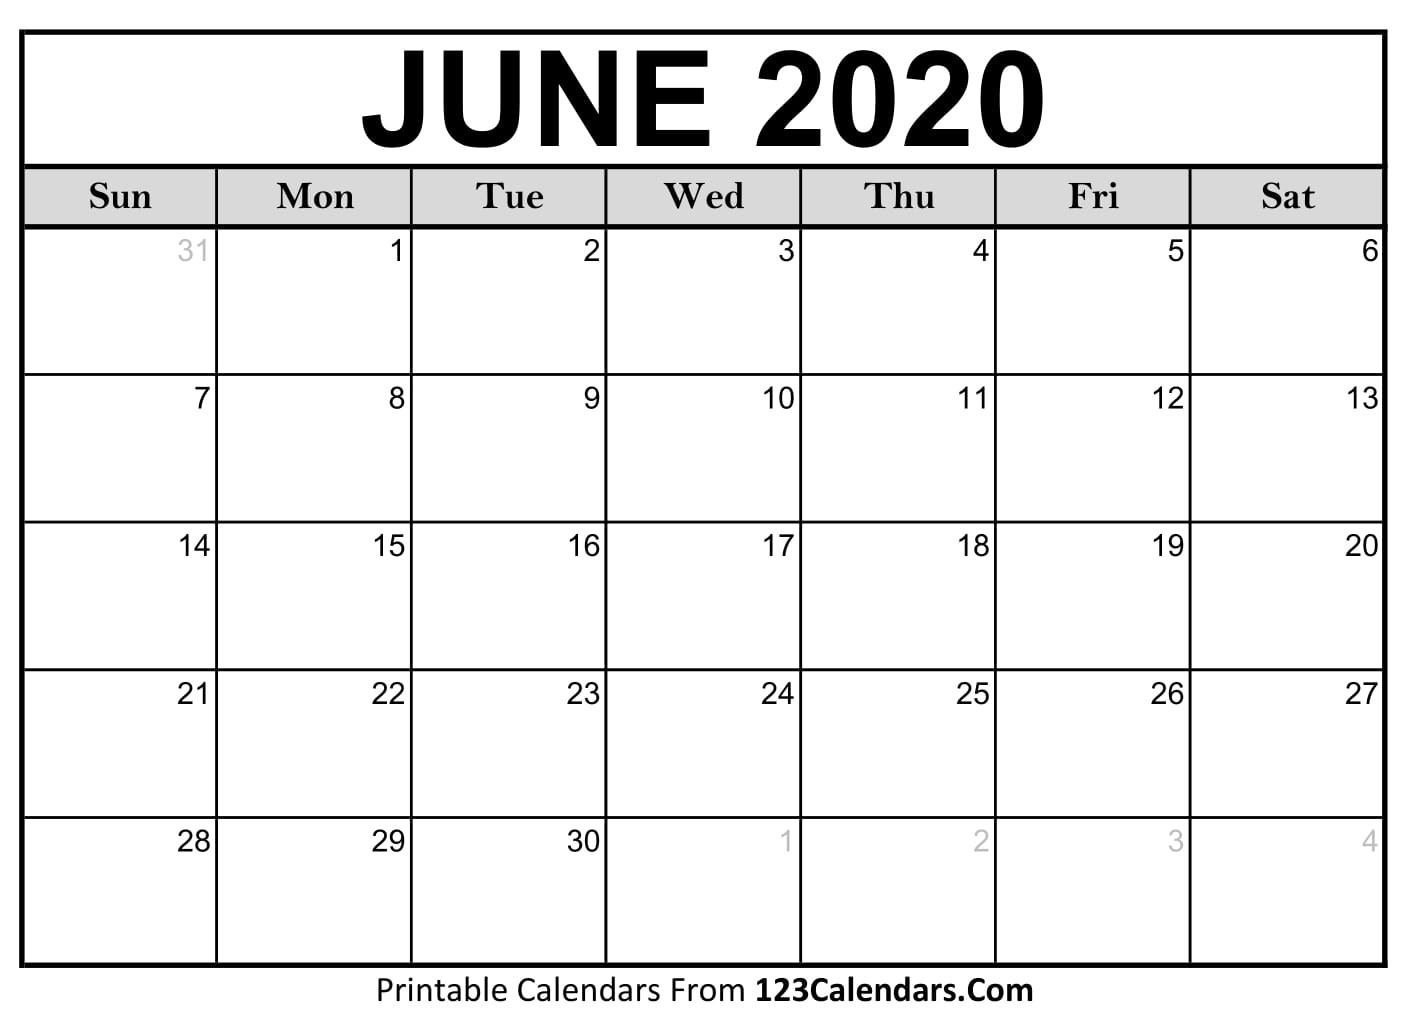 June 2020 Printable Calendar | 123Calendars  National Day Calendar June 2020